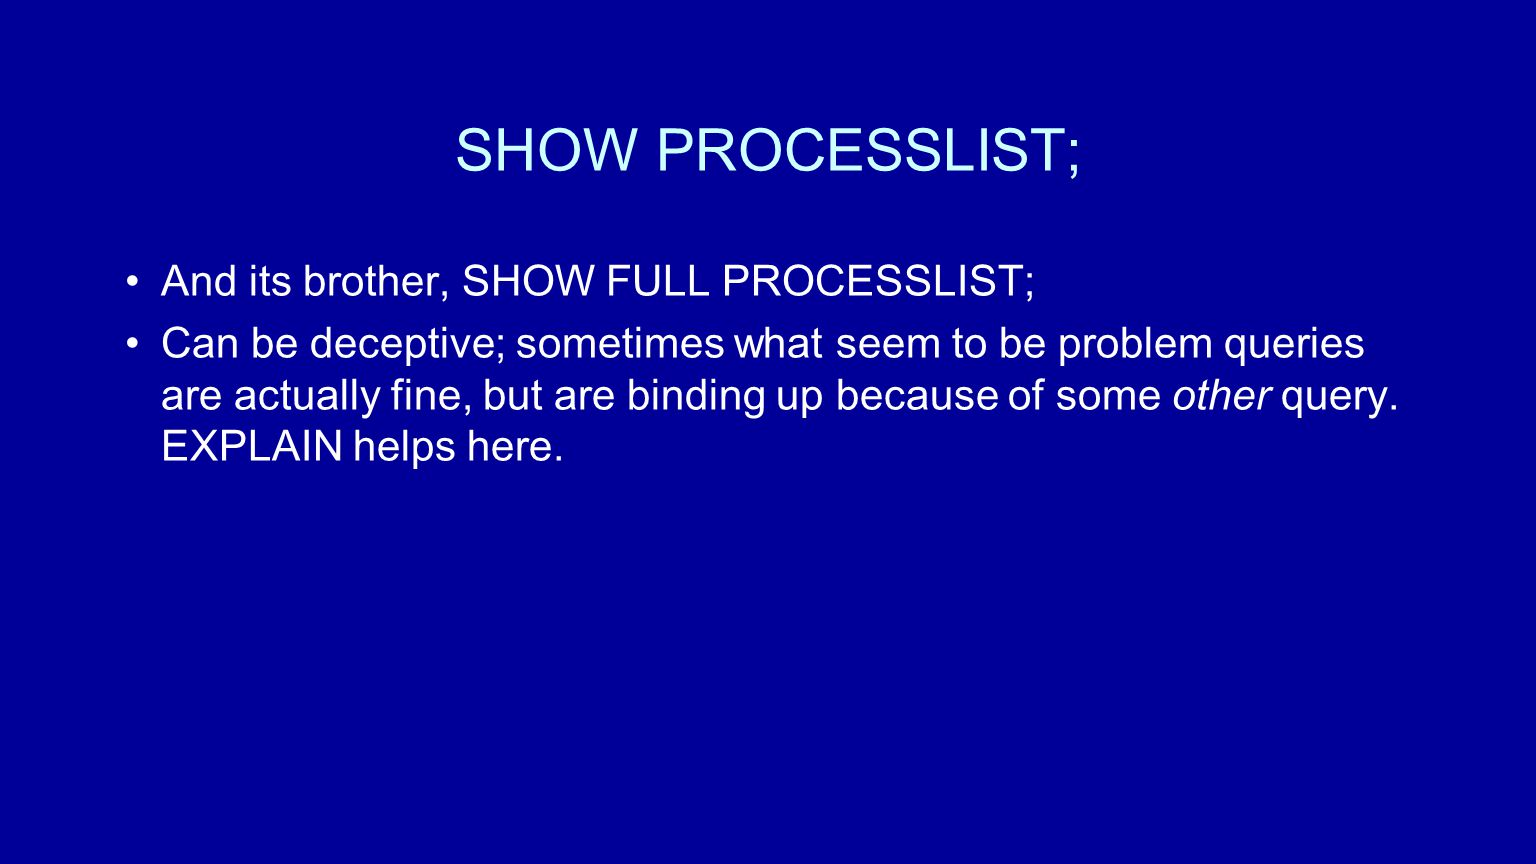 SHOW PROCESSLIST; And its brother, SHOW FULL PROCESSLIST; Can be deceptive; sometimes what seem to be problem queries are actually fine, but are binding up because of some other query.